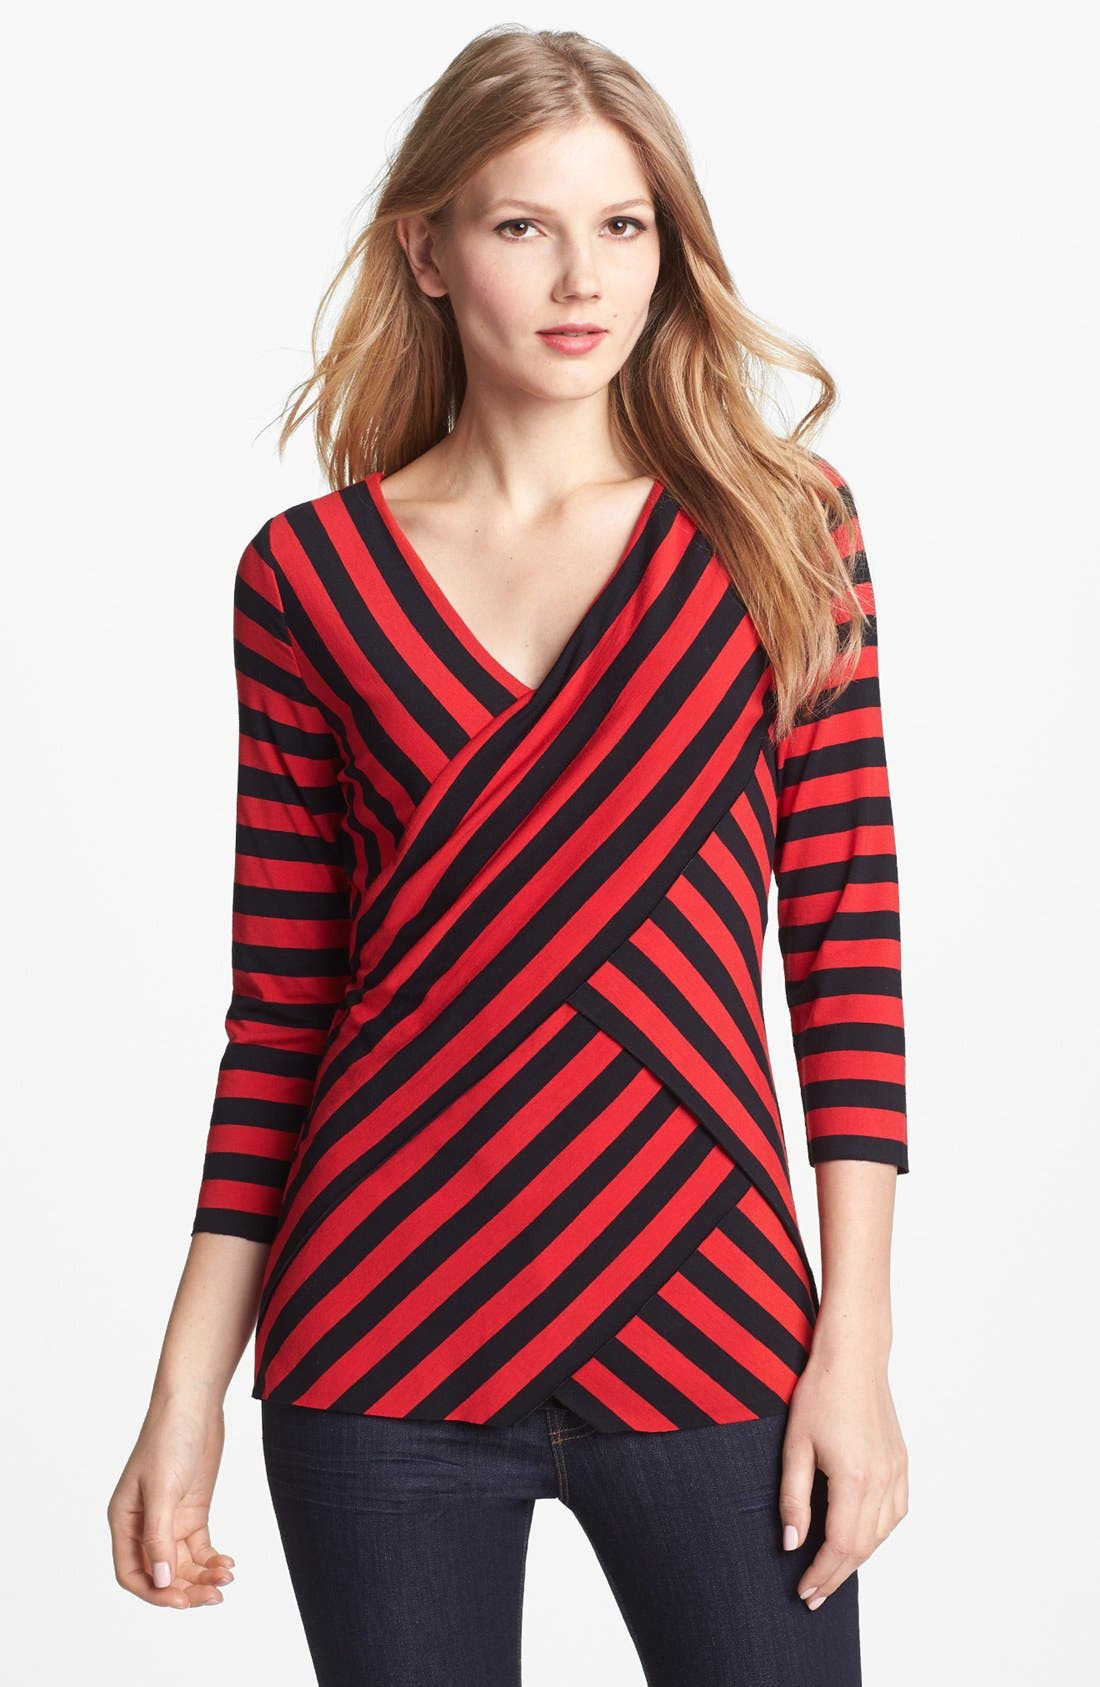 Alternate Image 1 Selected - Vince Camuto Zigzag Stripe Top